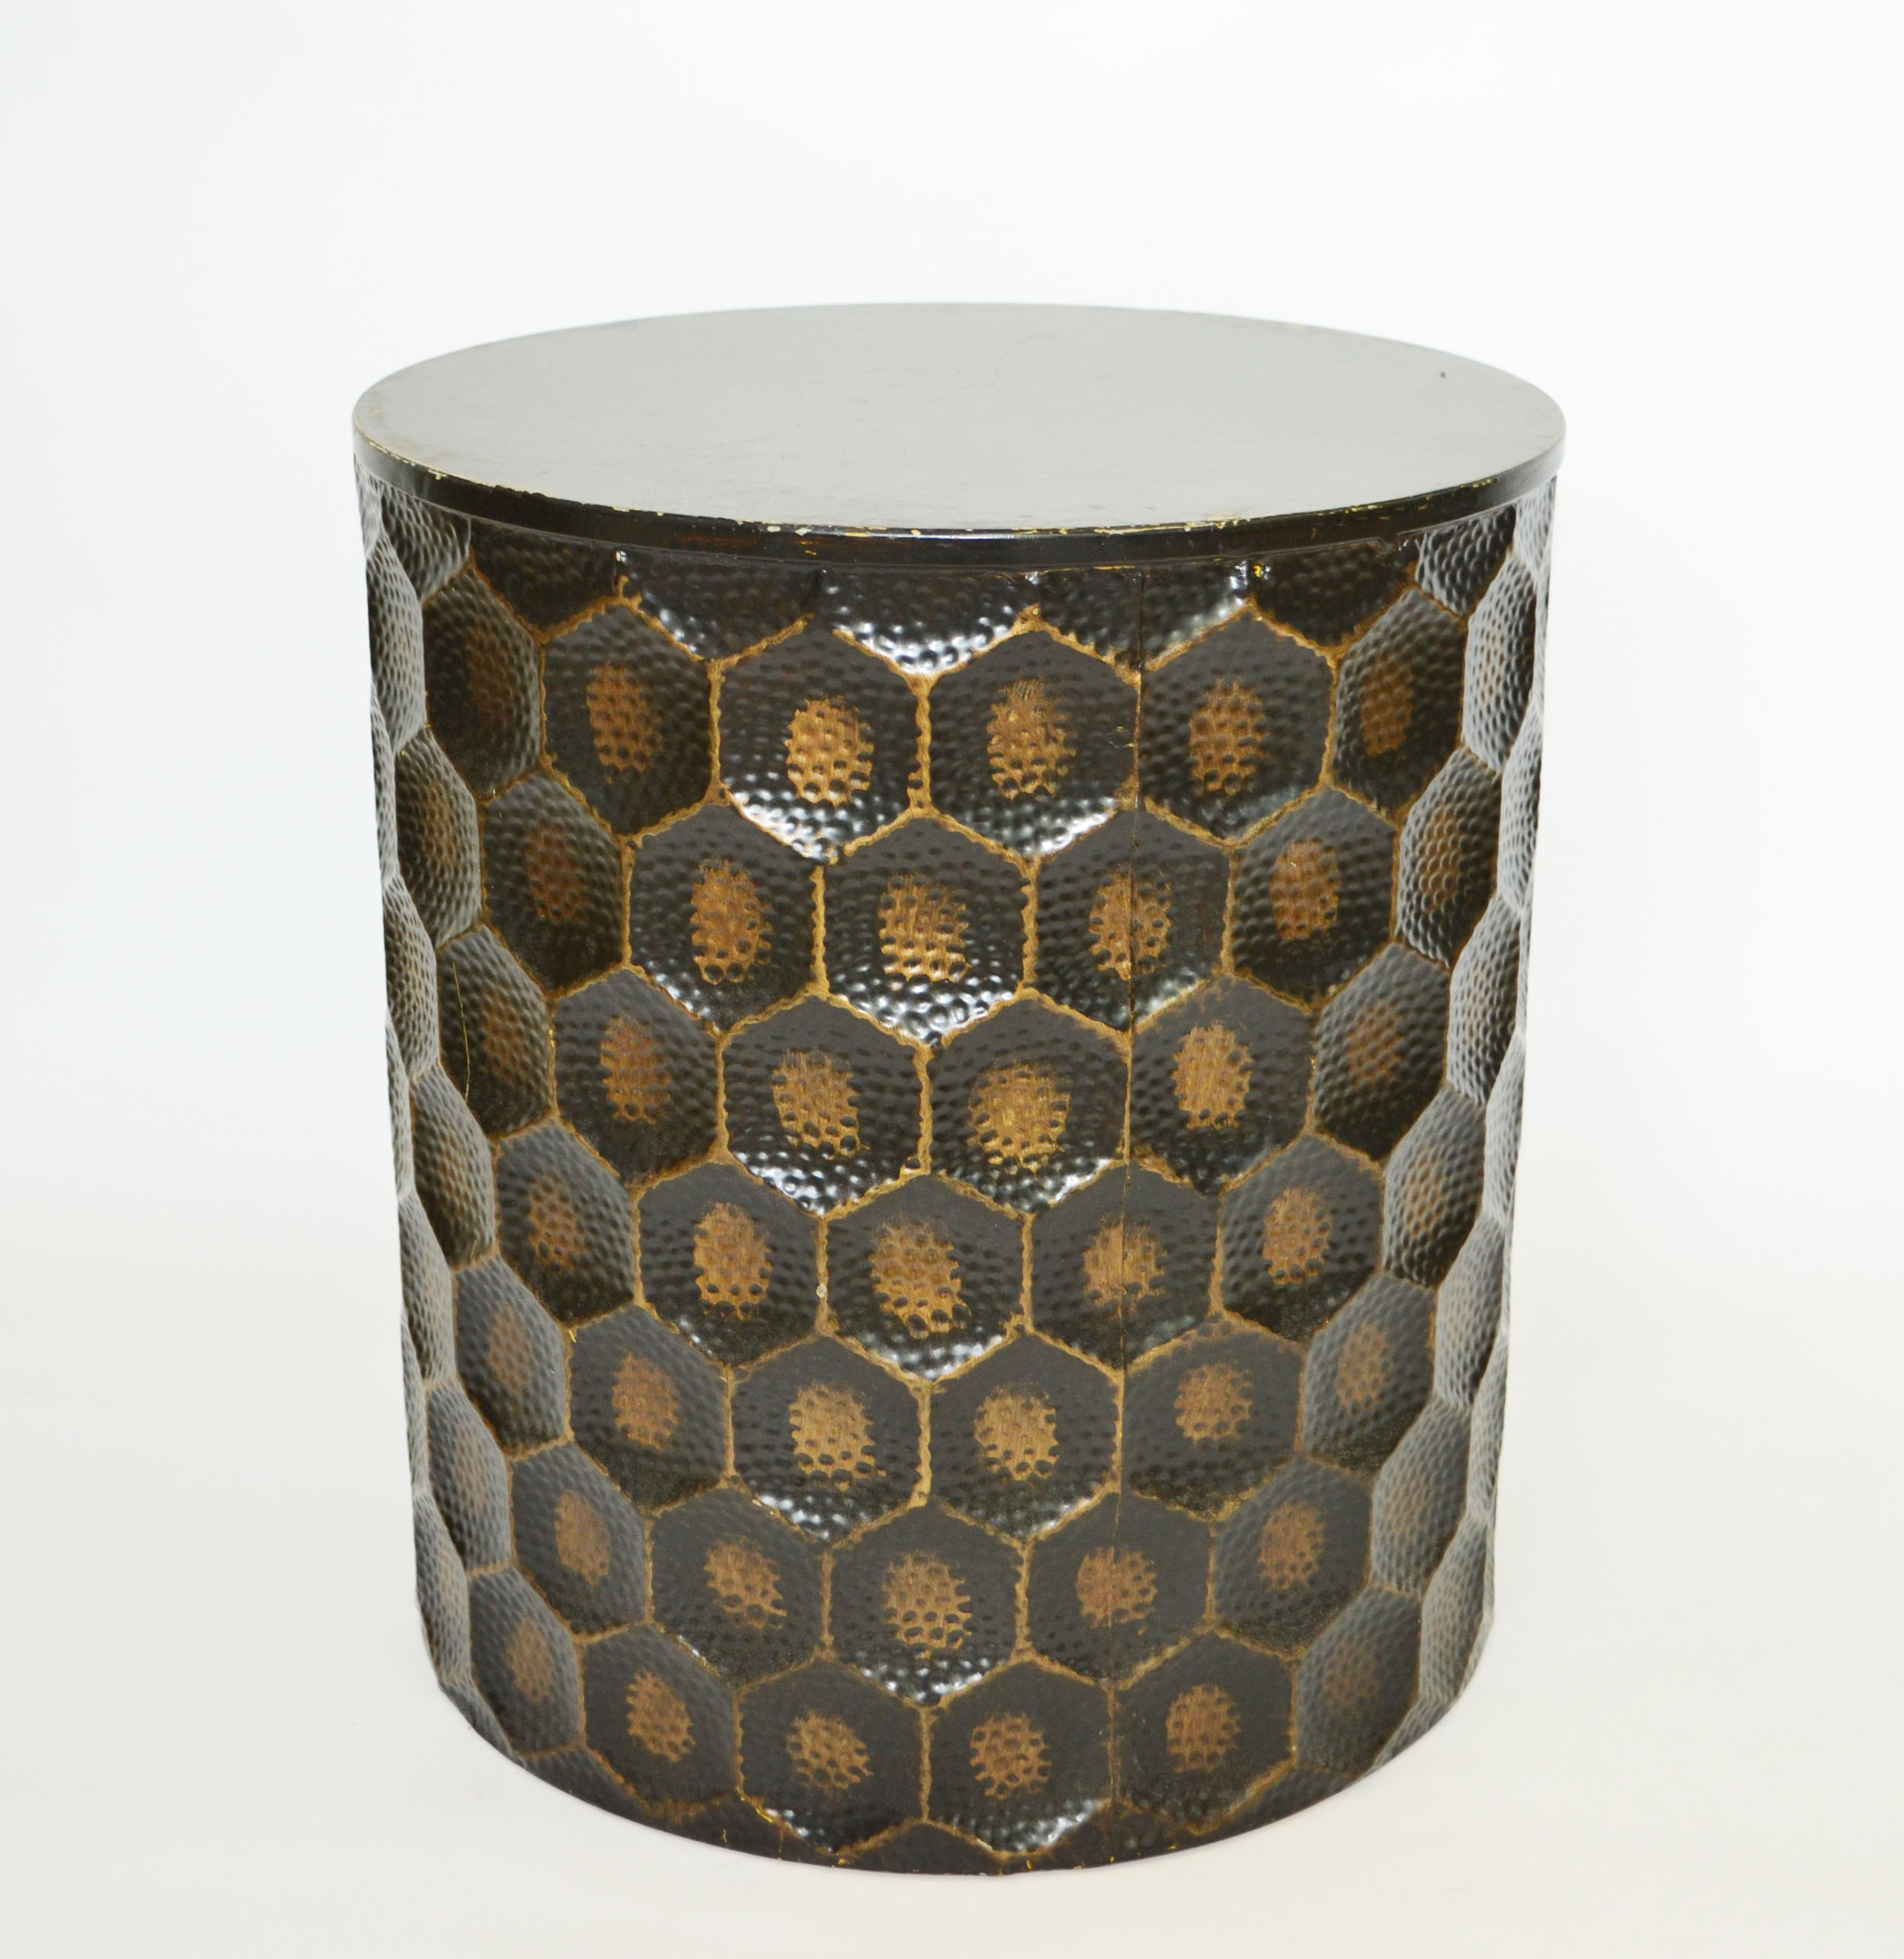 bronze side table   Quantity: 1  Price: $35.00